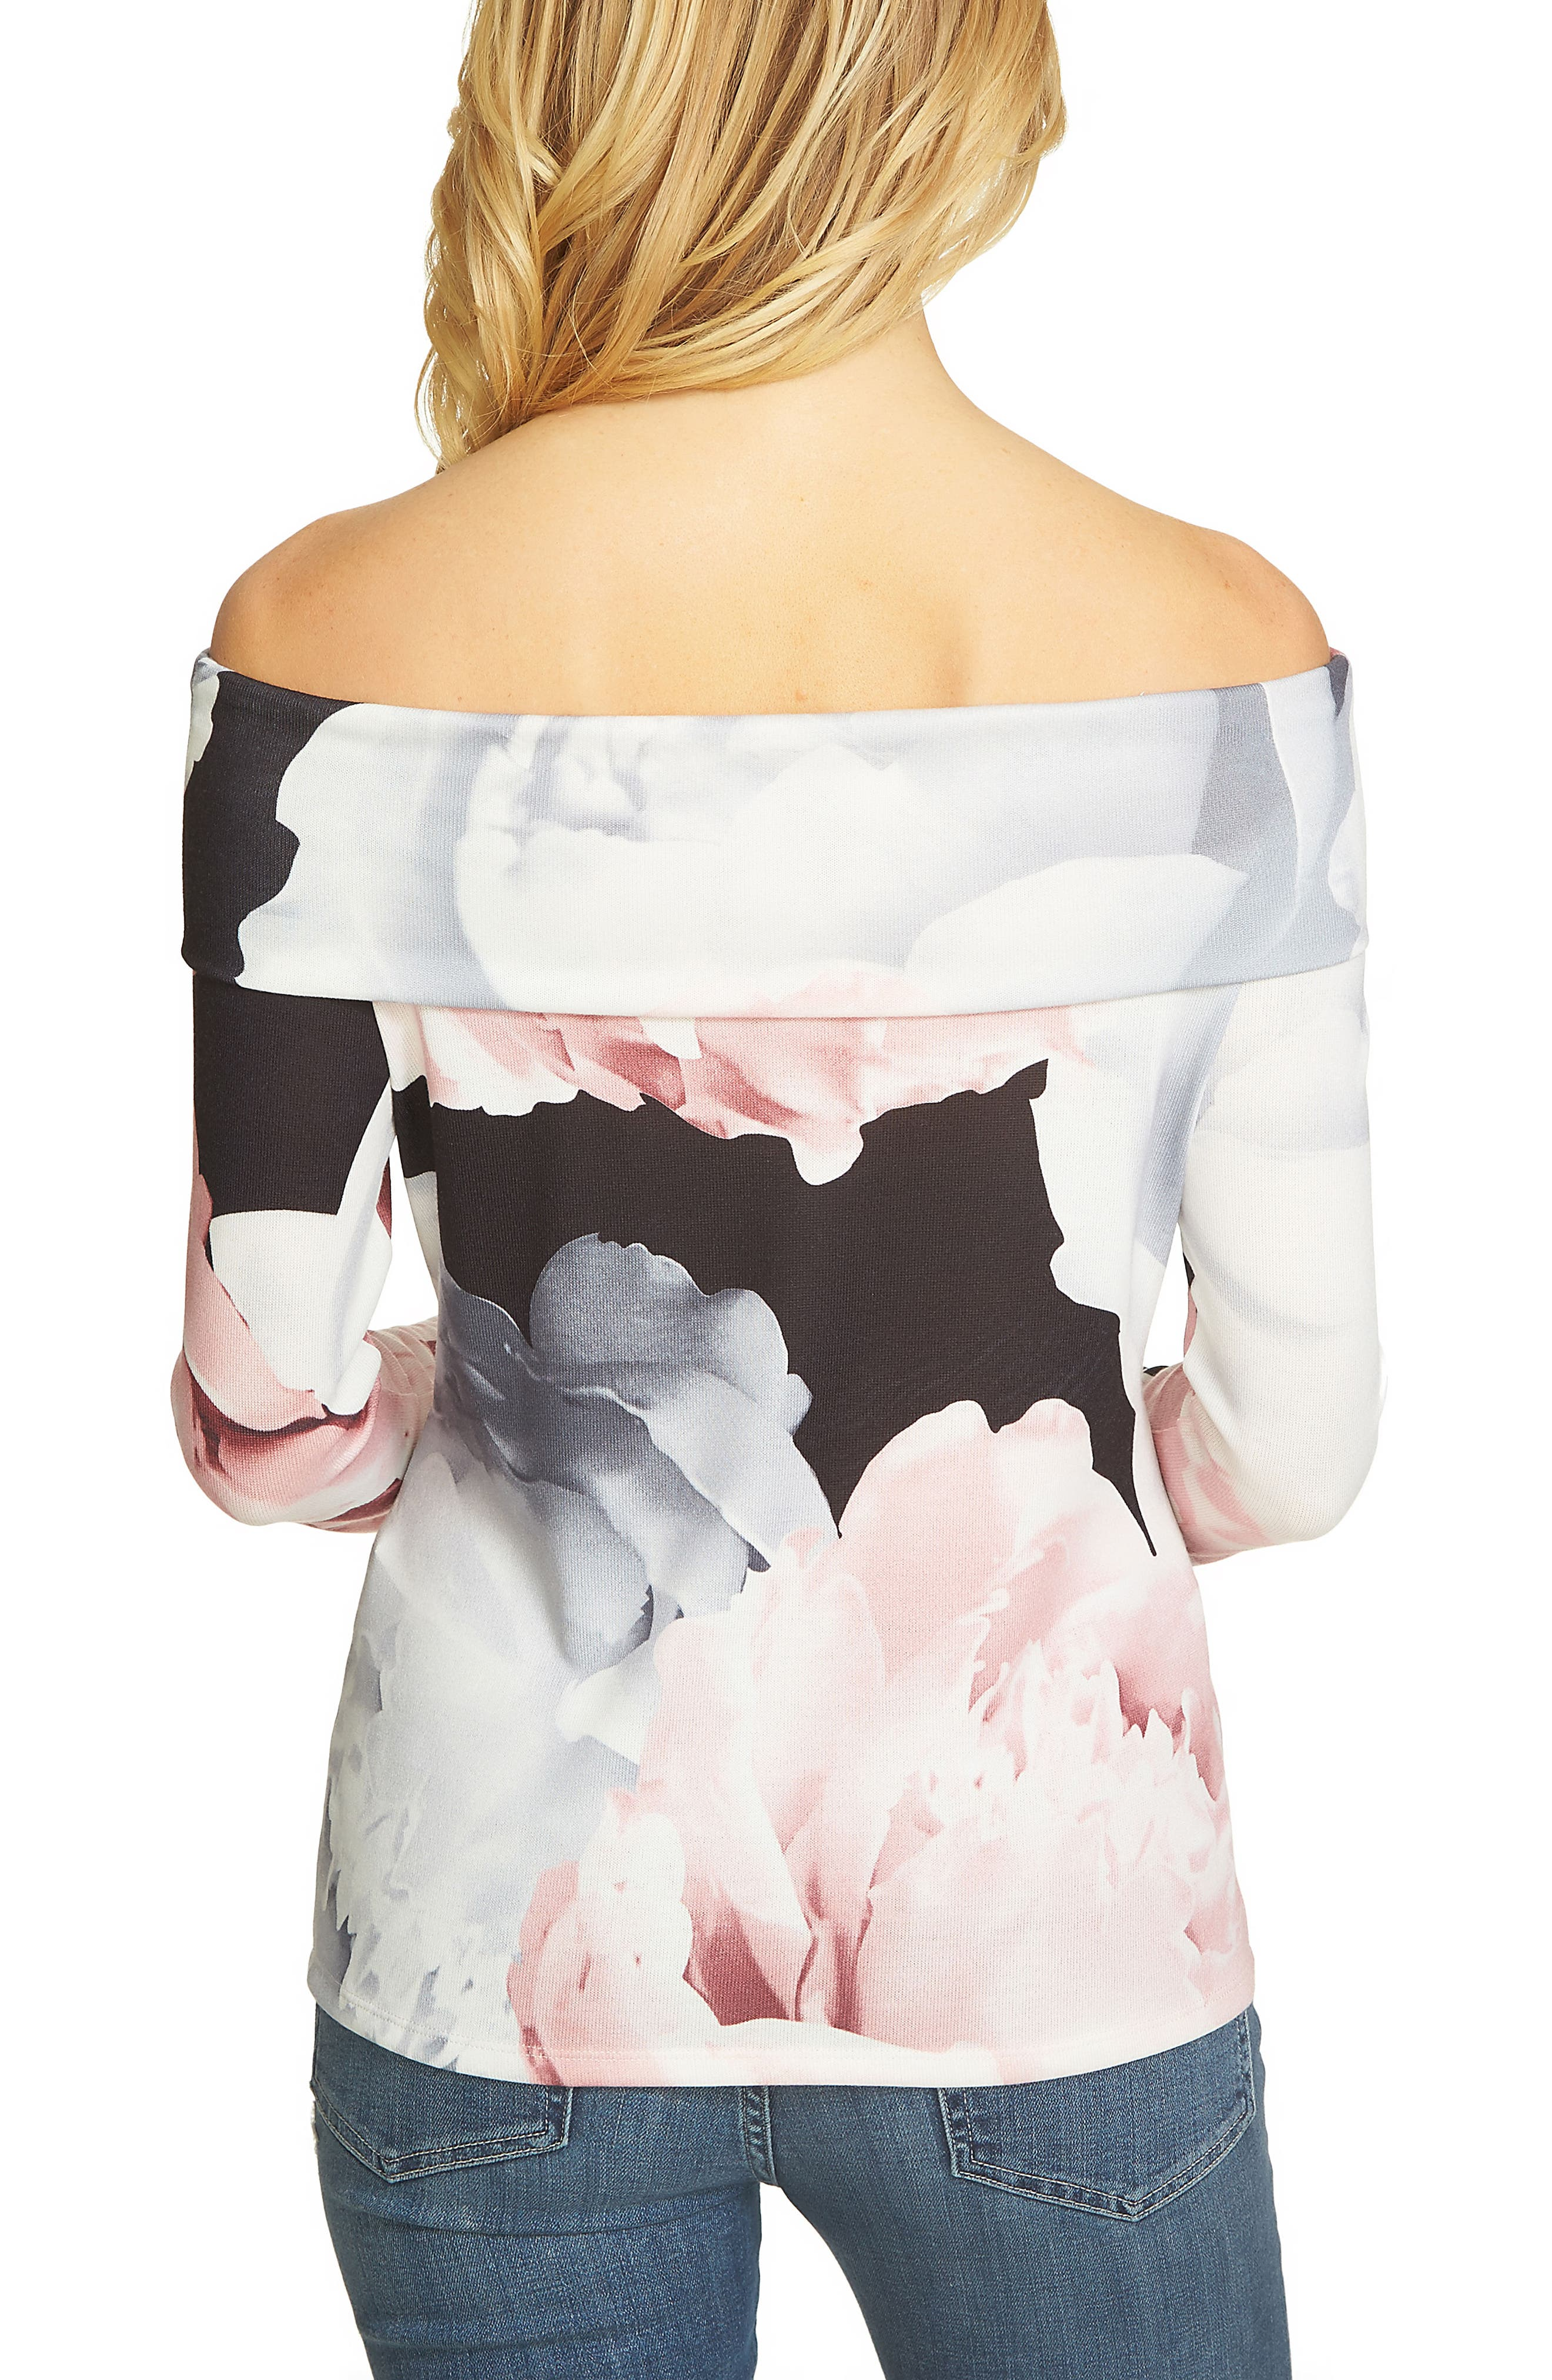 Magnificent Roses Off the Shoulder Top,                             Alternate thumbnail 2, color,                             010